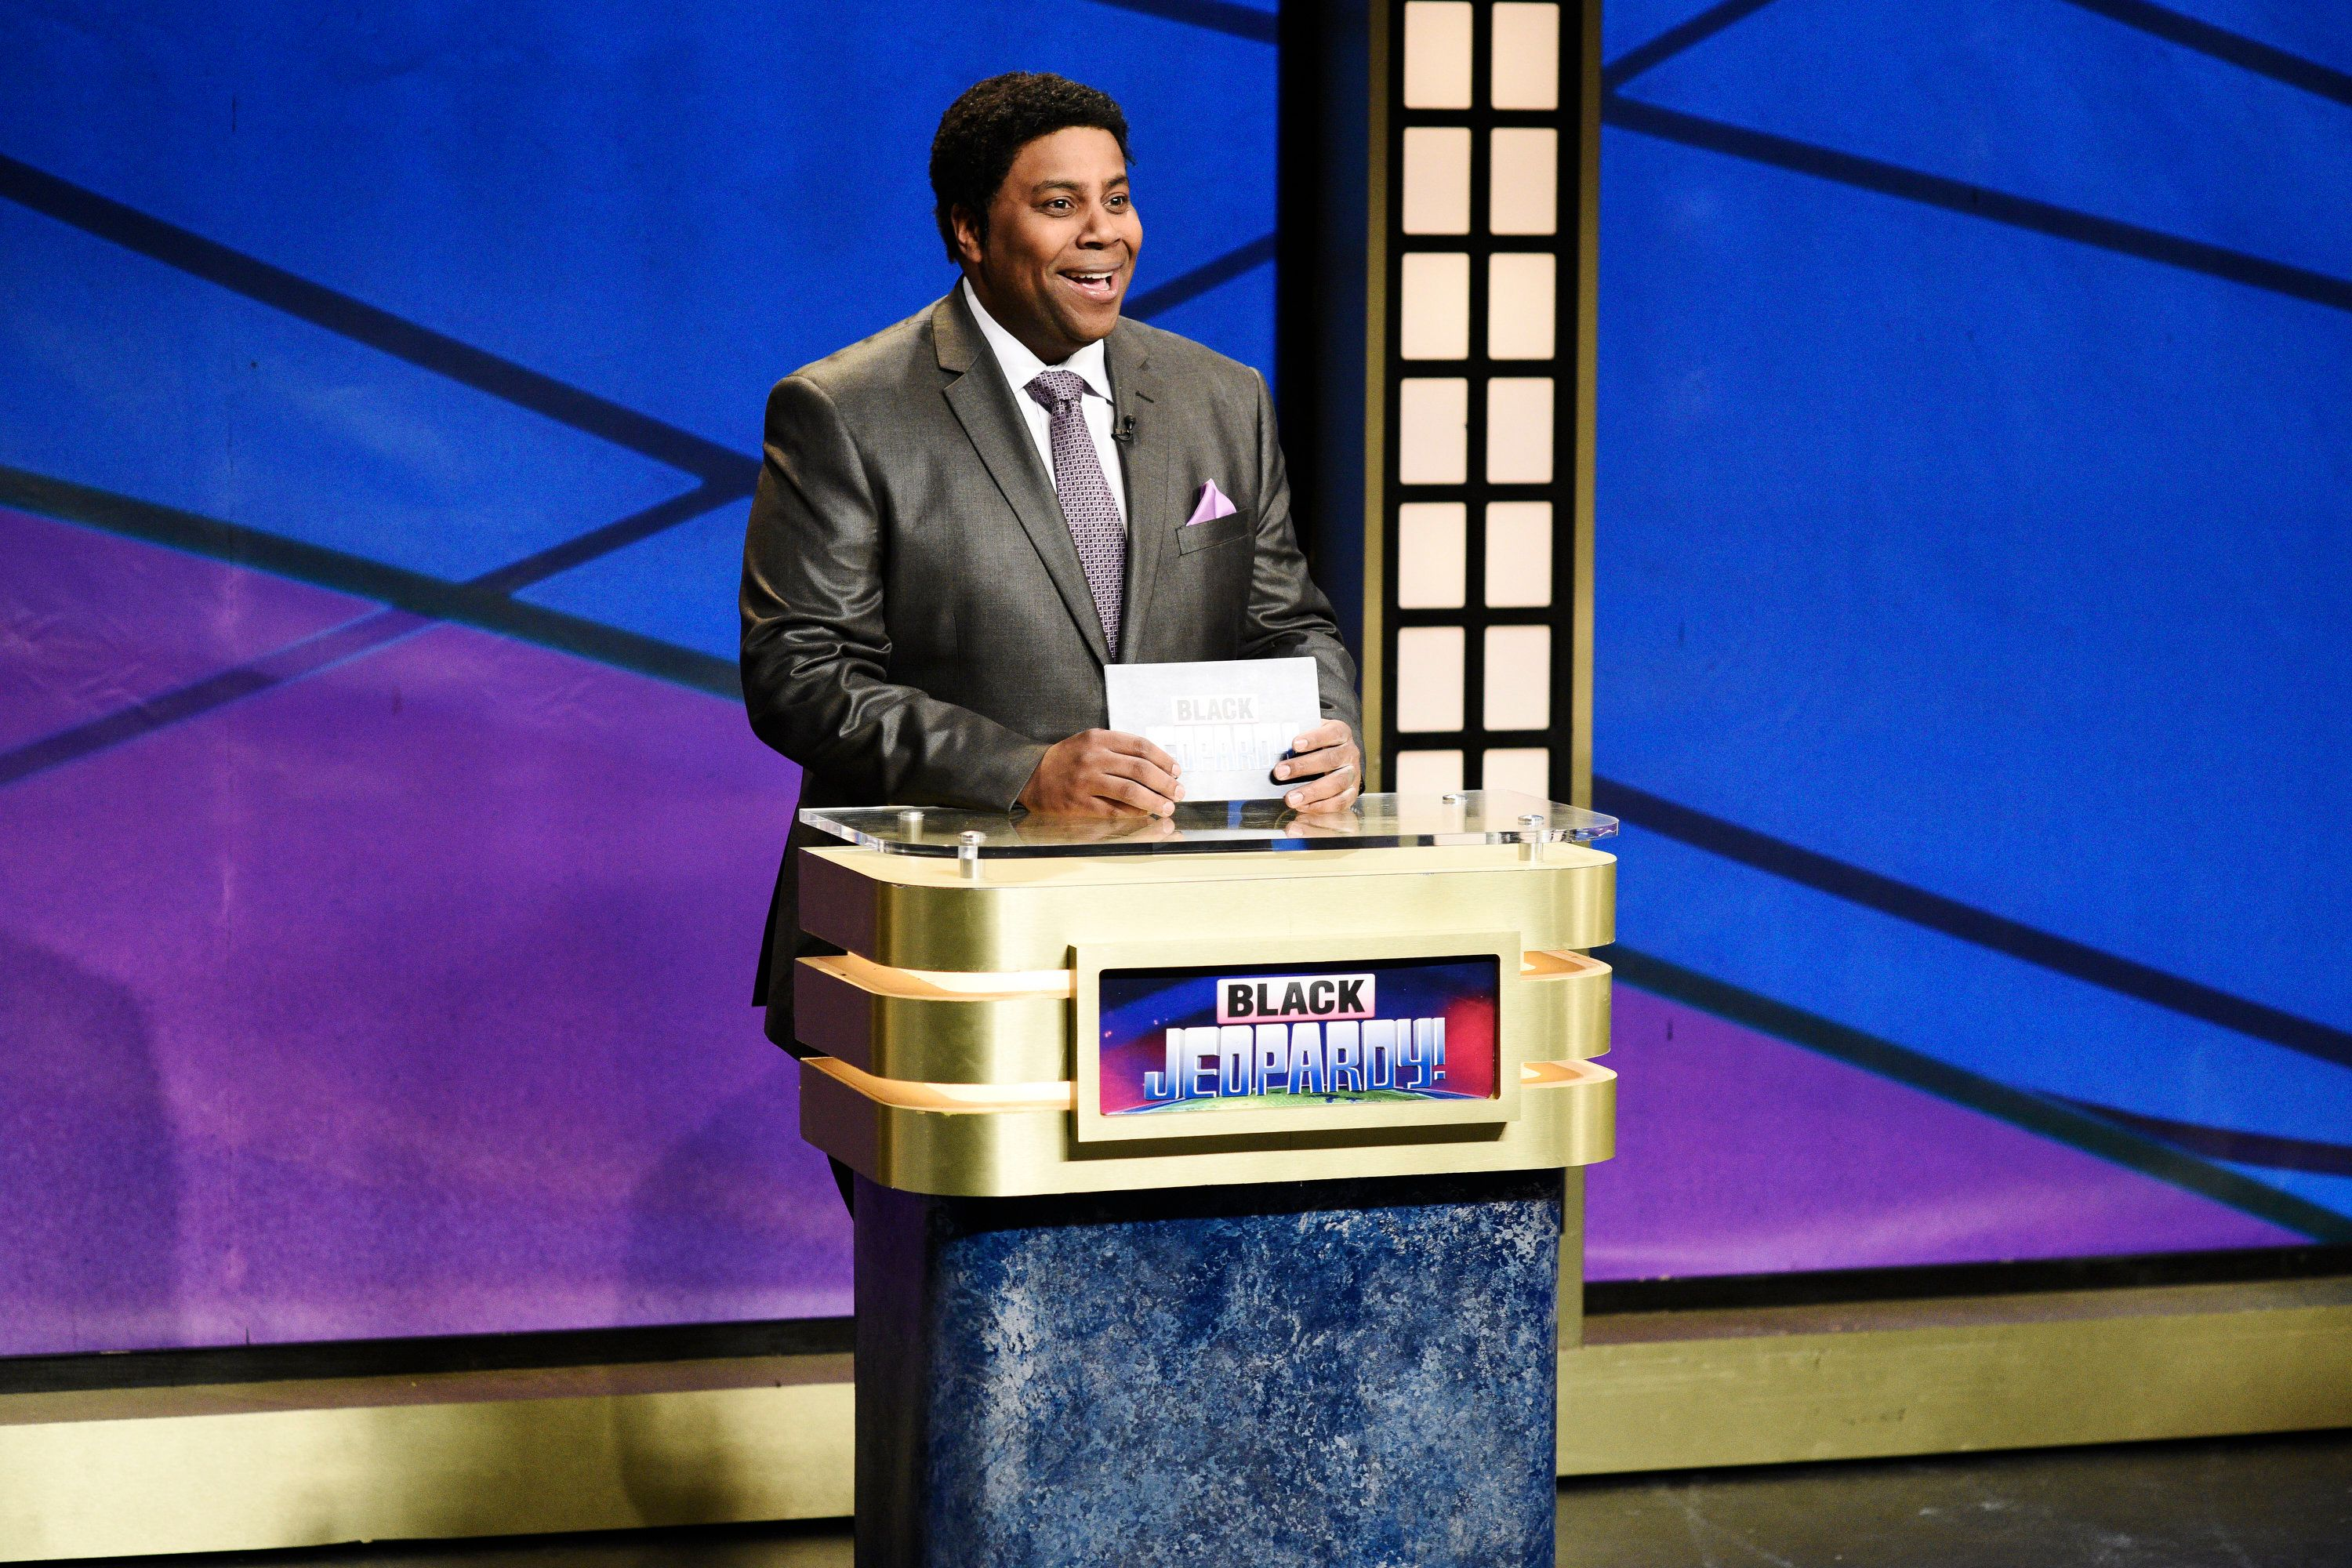 SATURDAY NIGHT LIVE -- Episode 1742 'Chadwick Boseman' -- Pictured: Kenan Thompson as Darnell Hayes during 'Black Jeopardy' in Studio 8H on Saturday, April 7, 2018 -- (Photo by: Will Heath/NBC/NBCU Photo Bank via Getty Images)